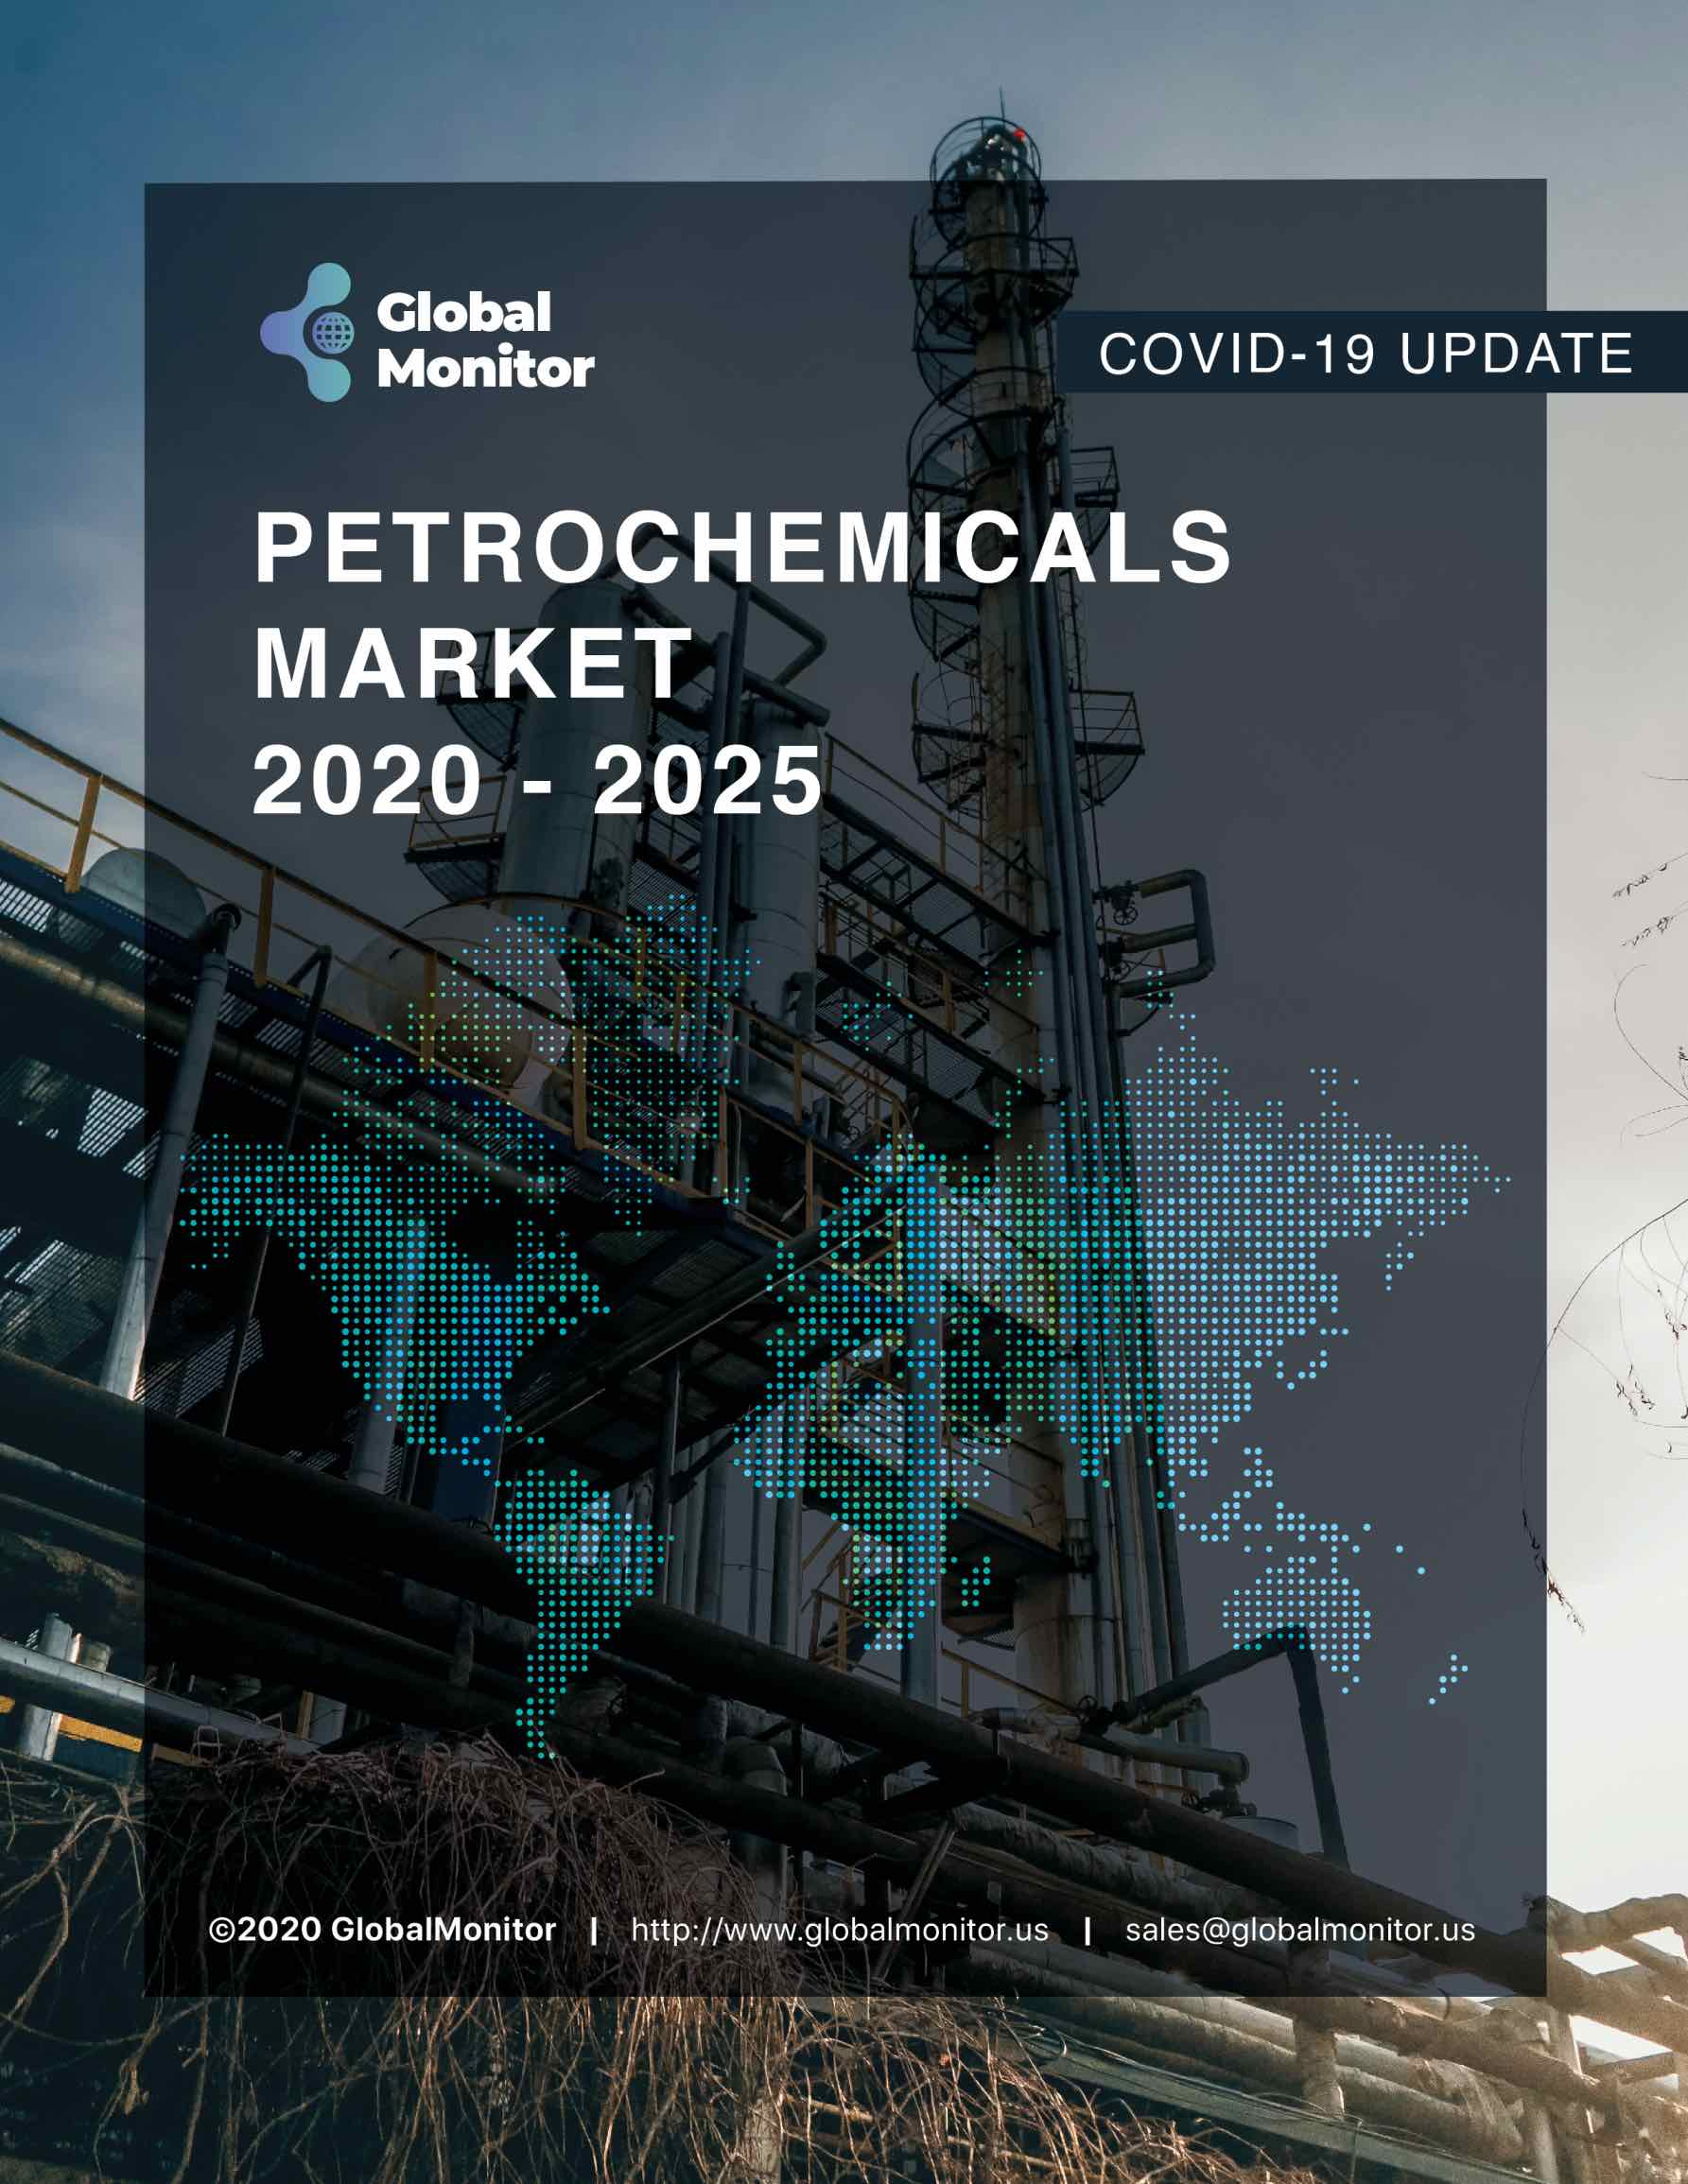 Israel Petrochemicals Market Report With COVID-19 Analysis (2020-2025)